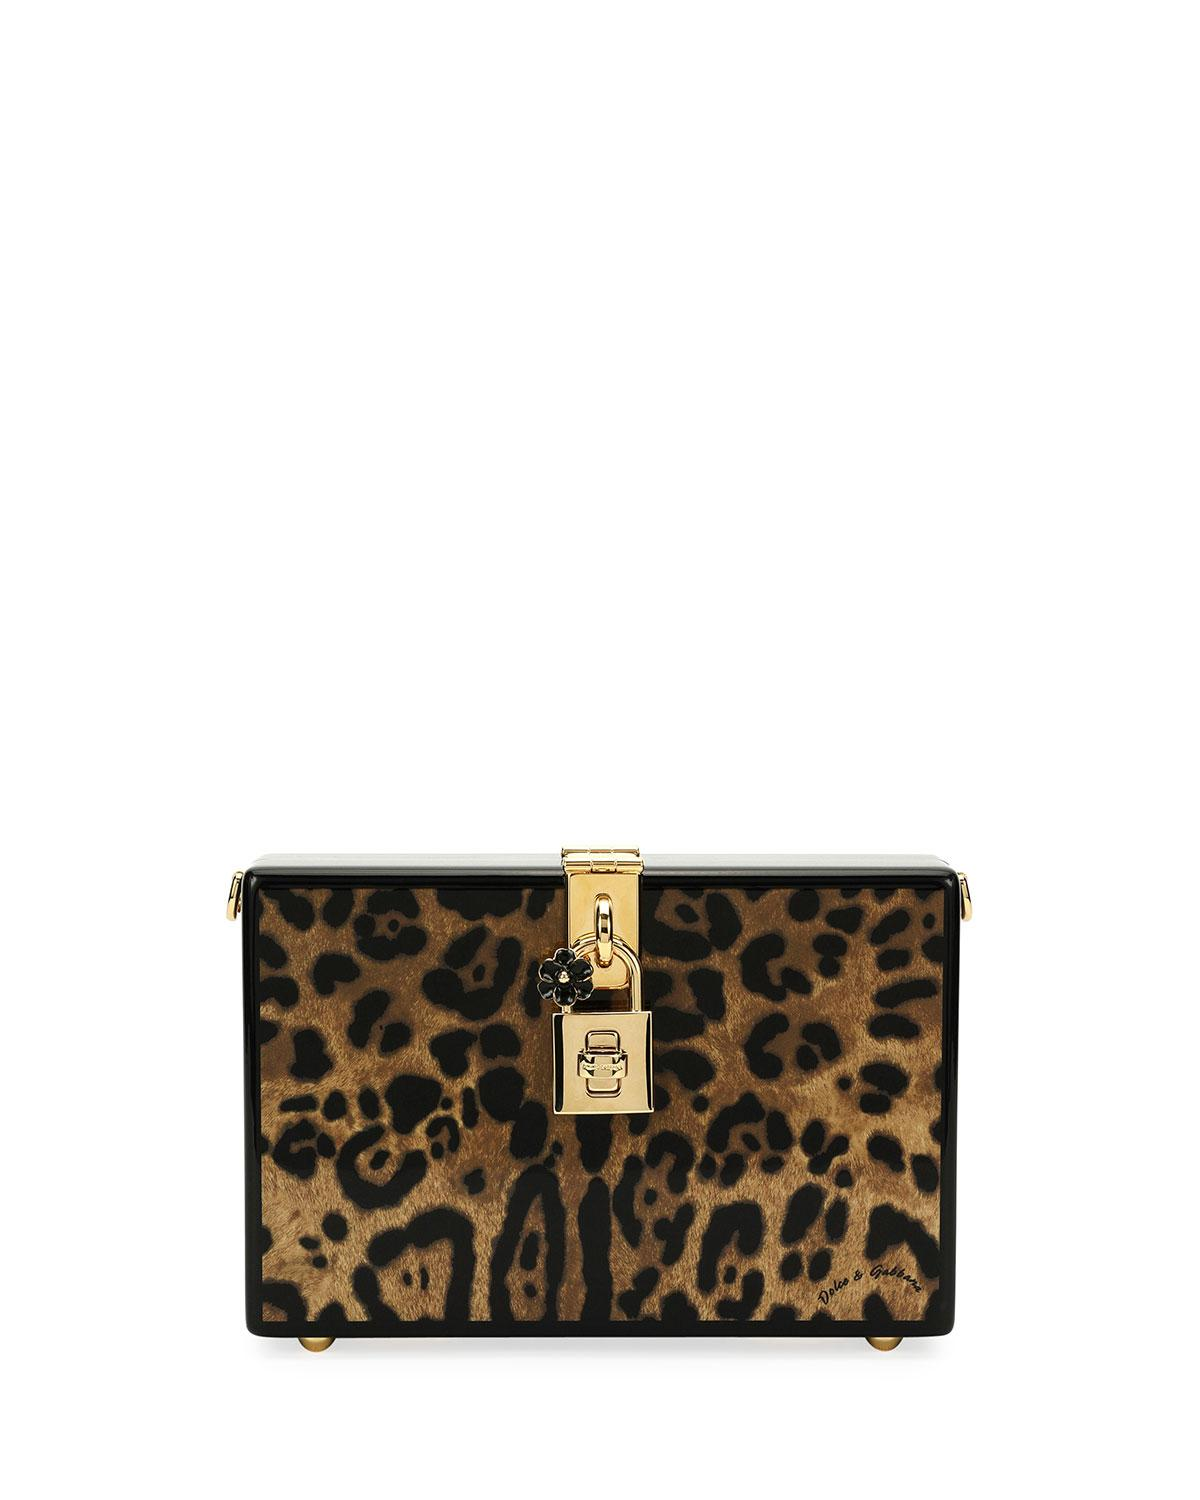 Lyst - Dolce   Gabbana Leopard-print Wood Box Clutch Bag in Brown d0e1ed507a8b4